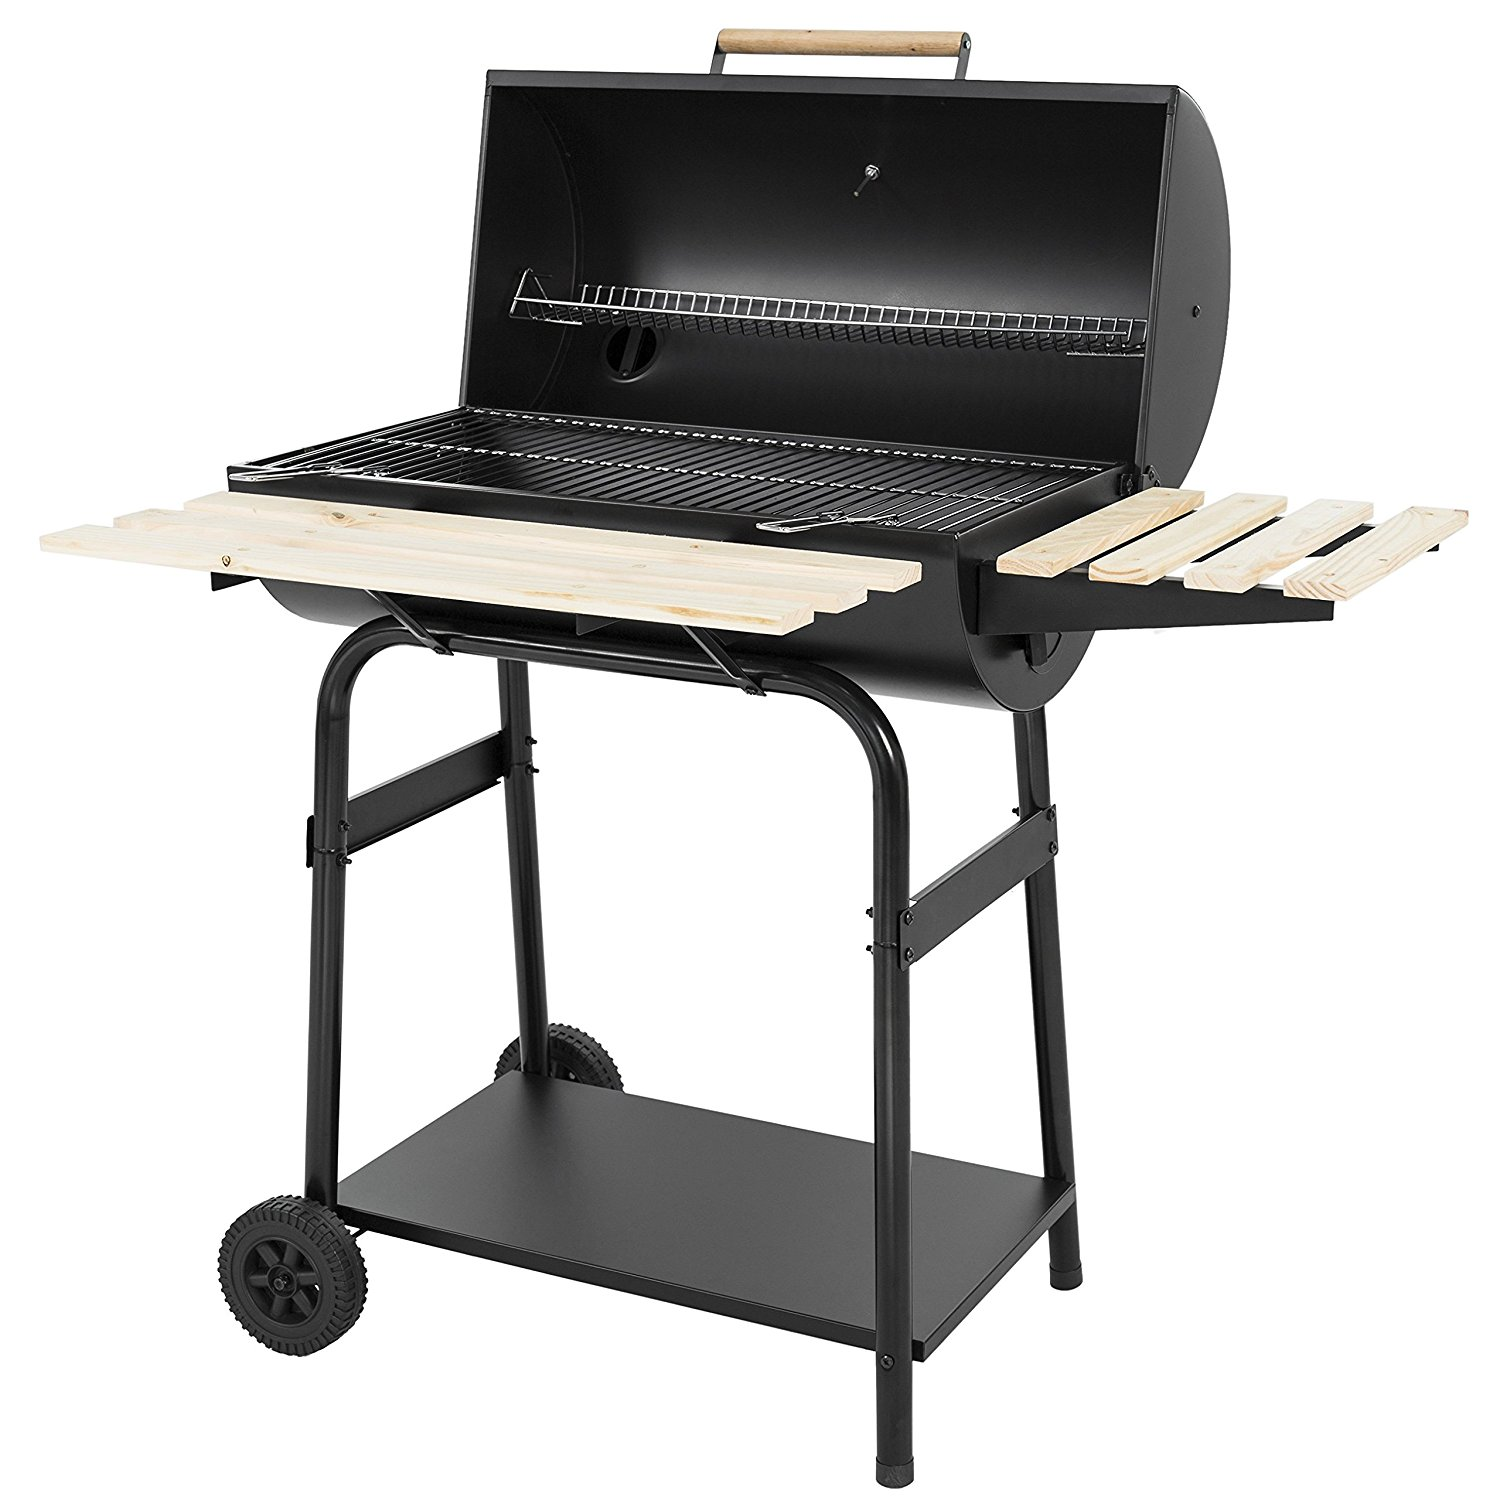 Top 13 Best Charcoal Grill Under $100